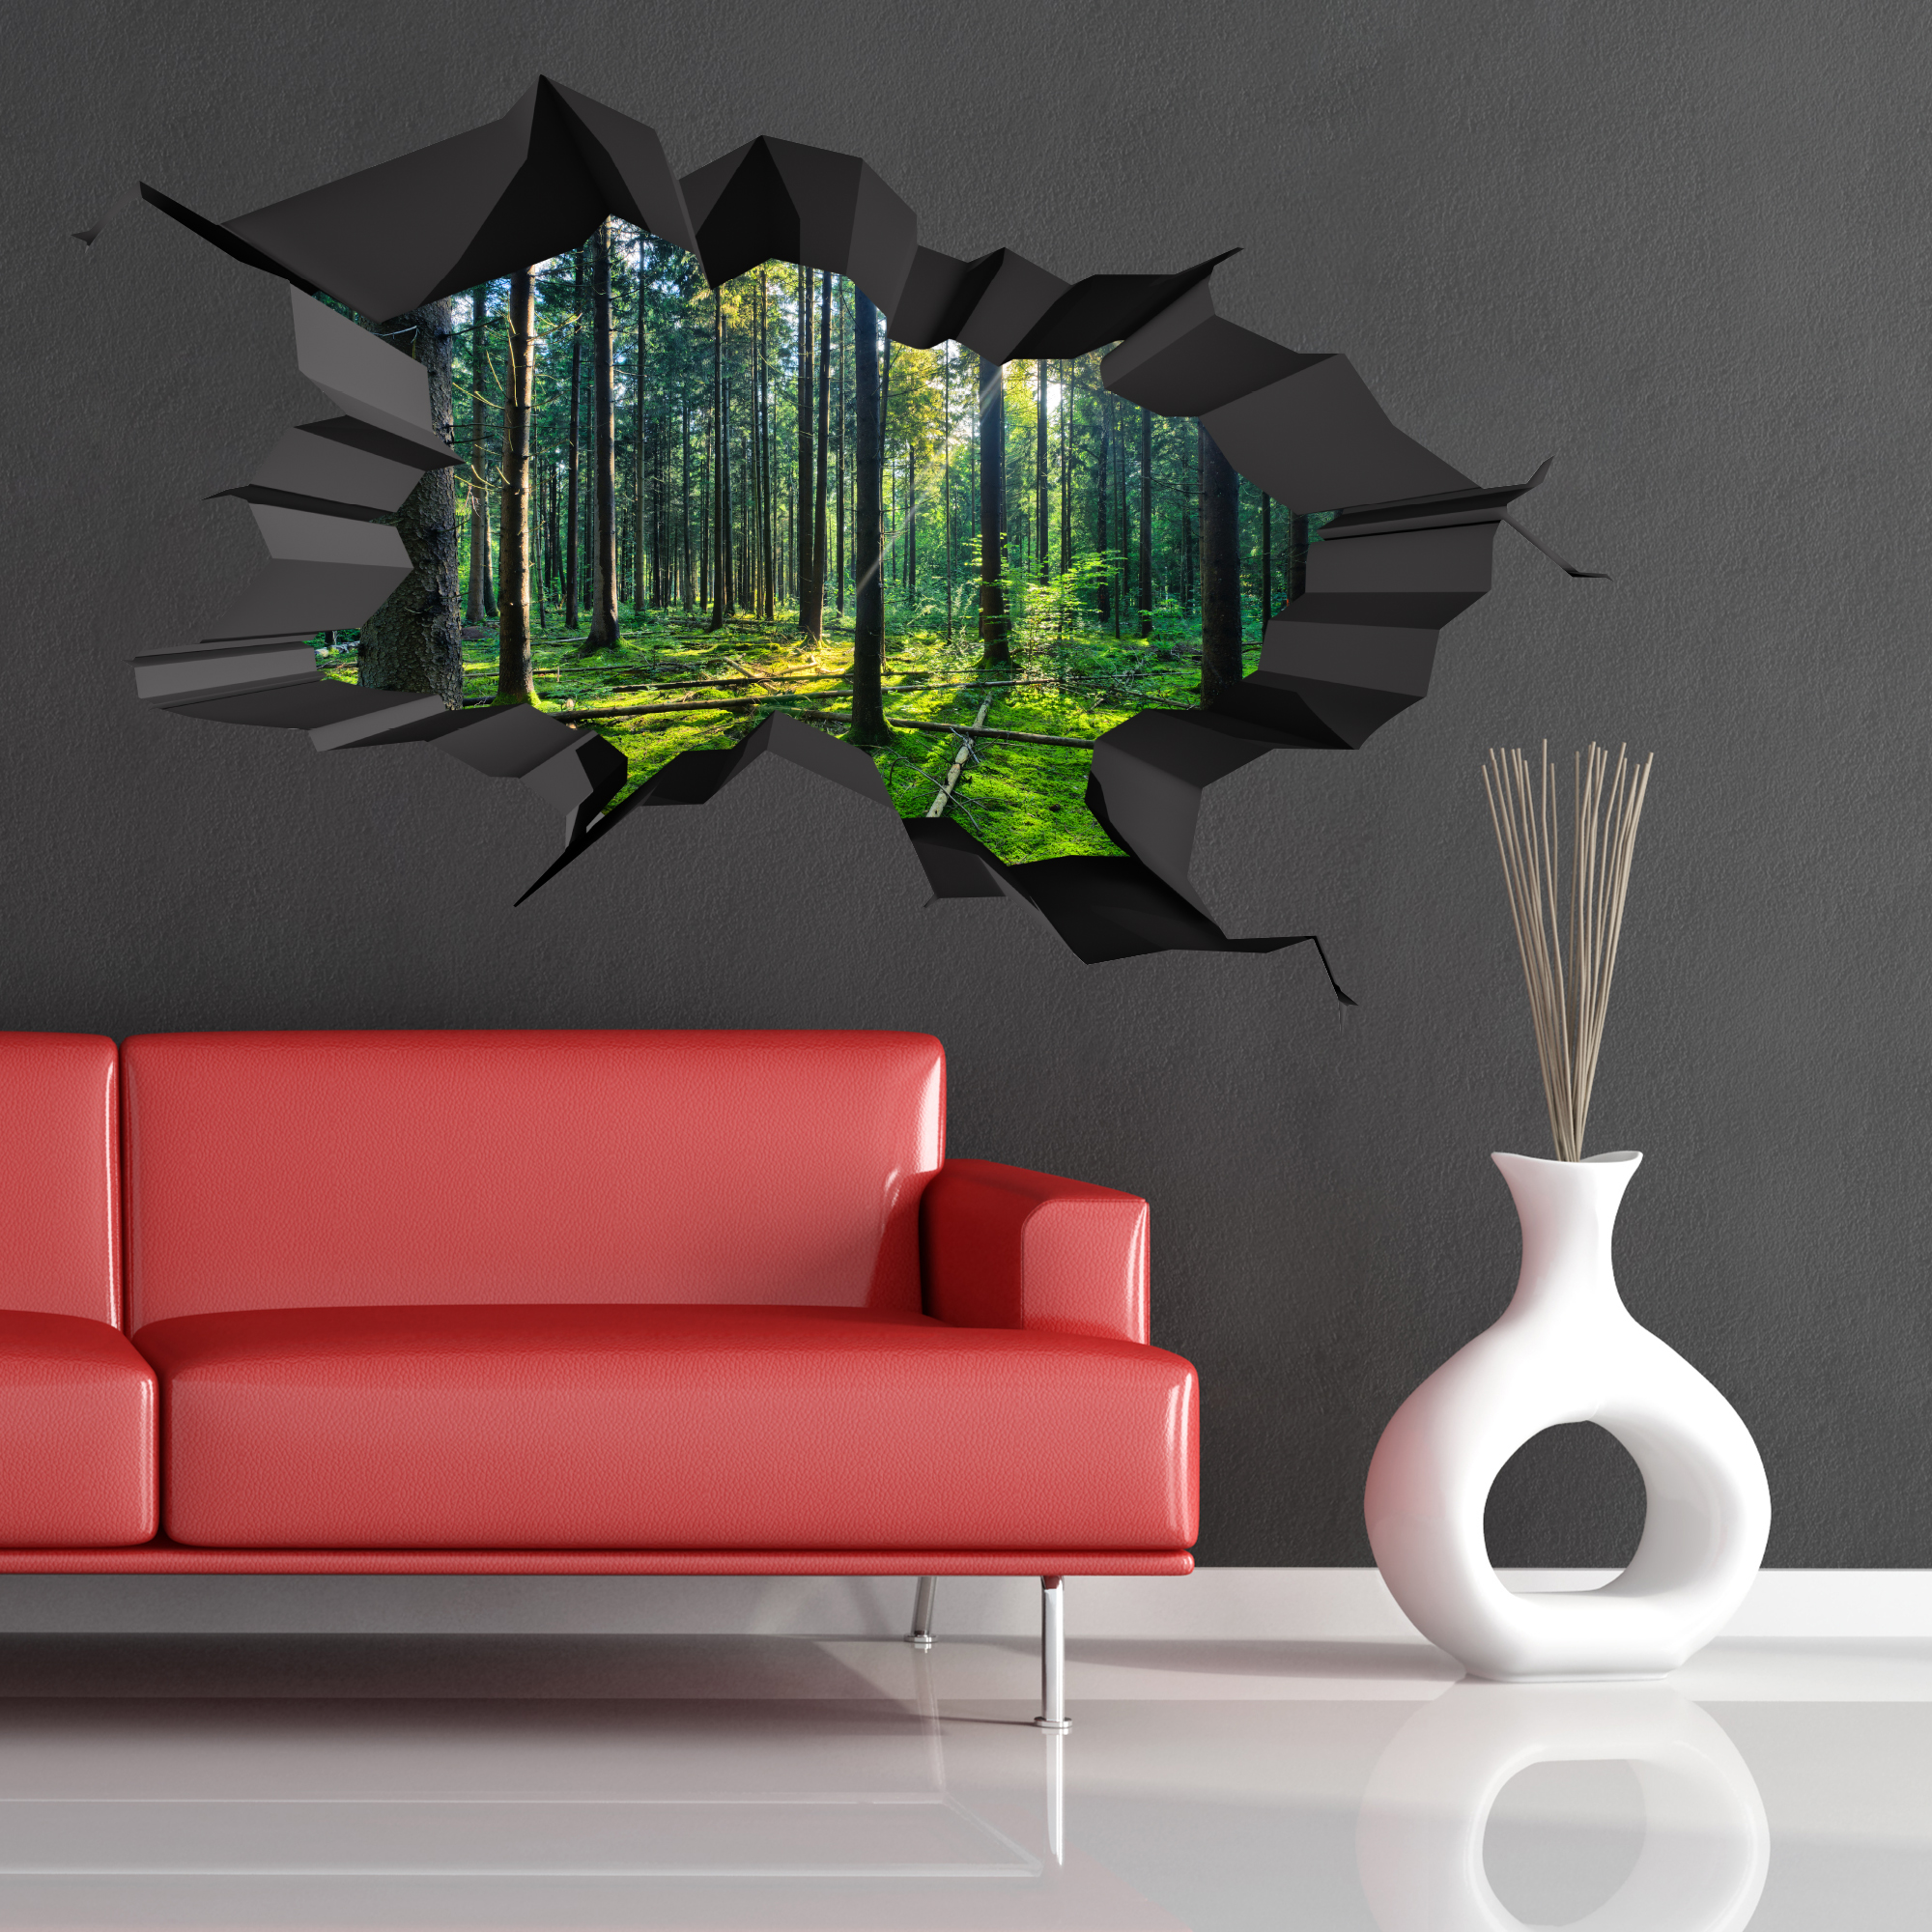 FULL COLOUR WOODS FOREST TREES JUNGLE CRACKED 3D WALL ART STICKER DECAL WSDFC47